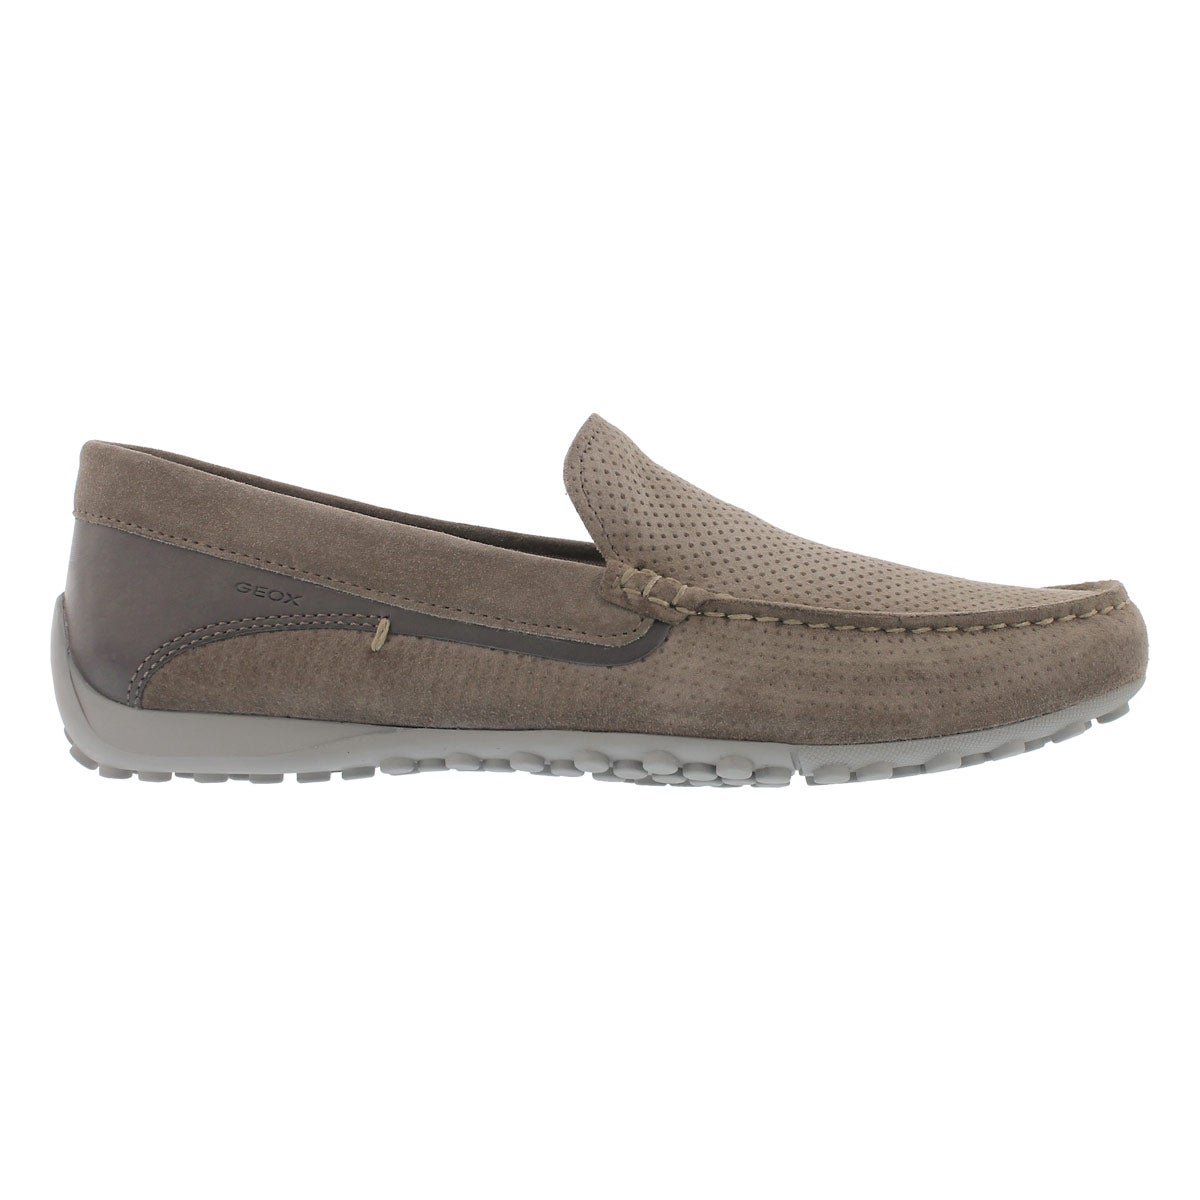 Mns Snake Moc taupe/anthracite loafer